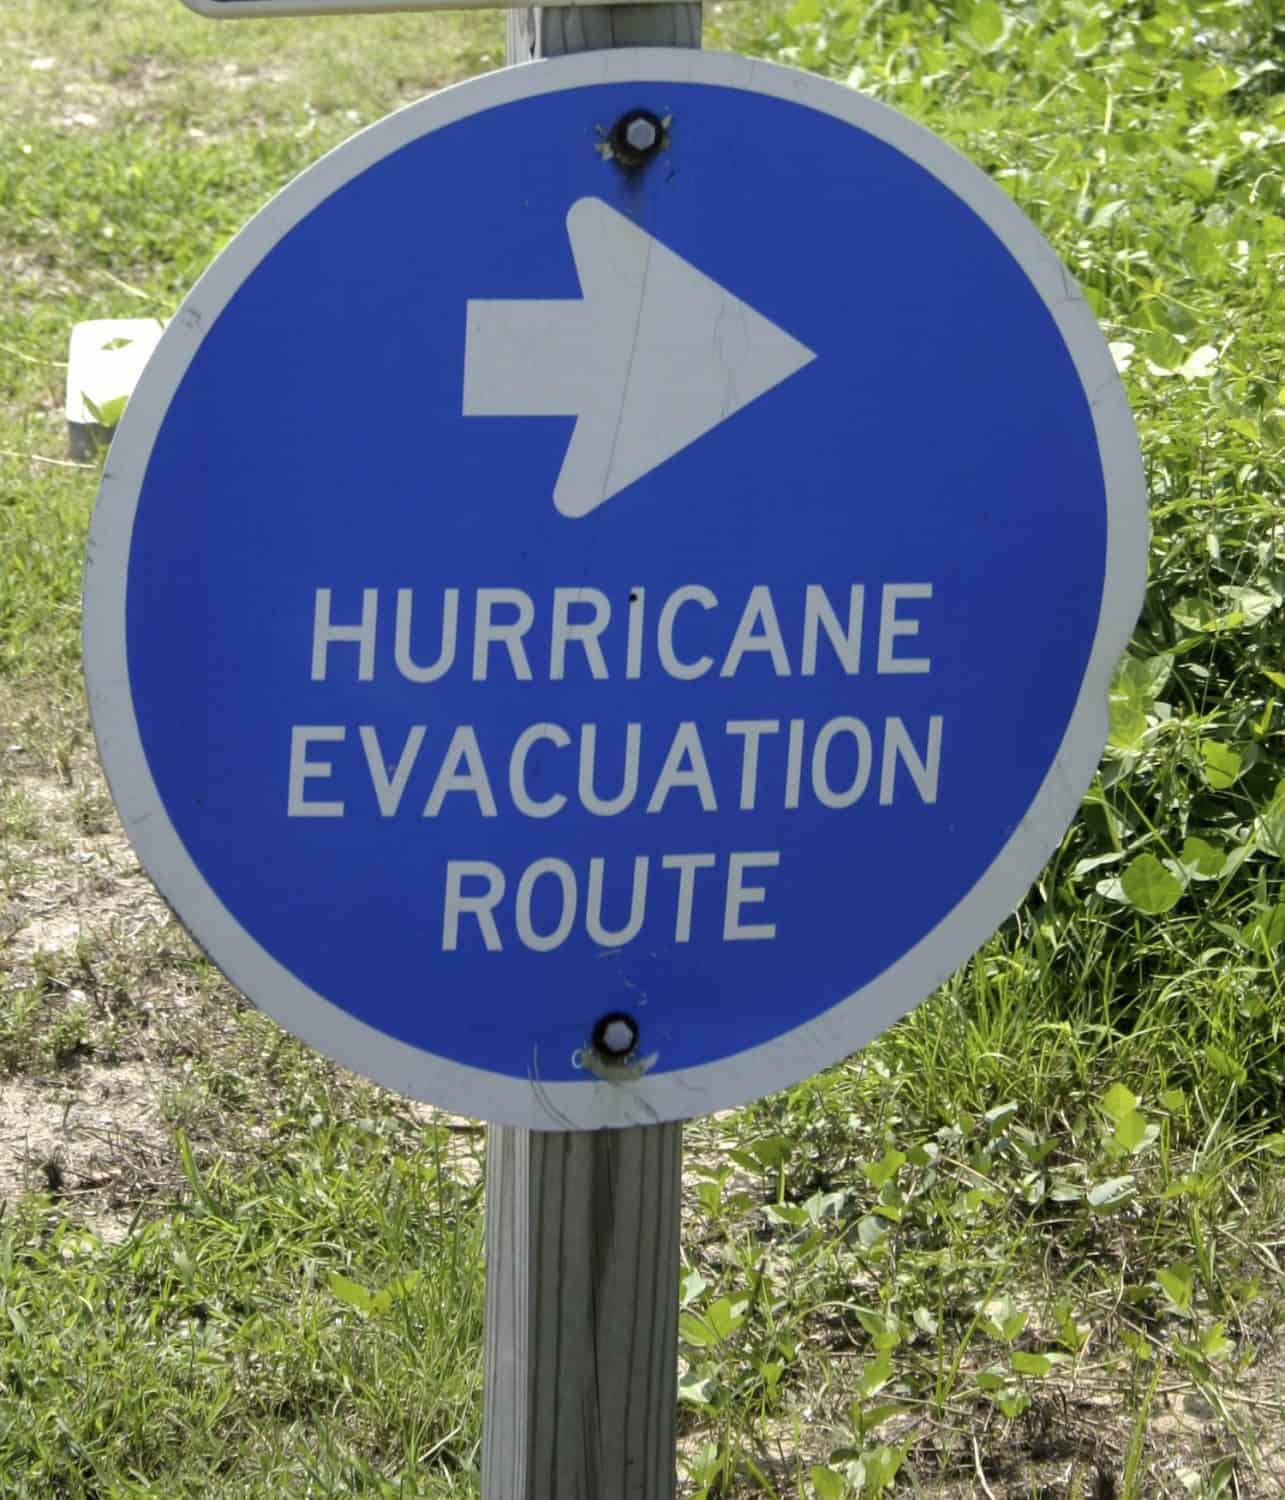 Sign indicating hurricane evacuation route